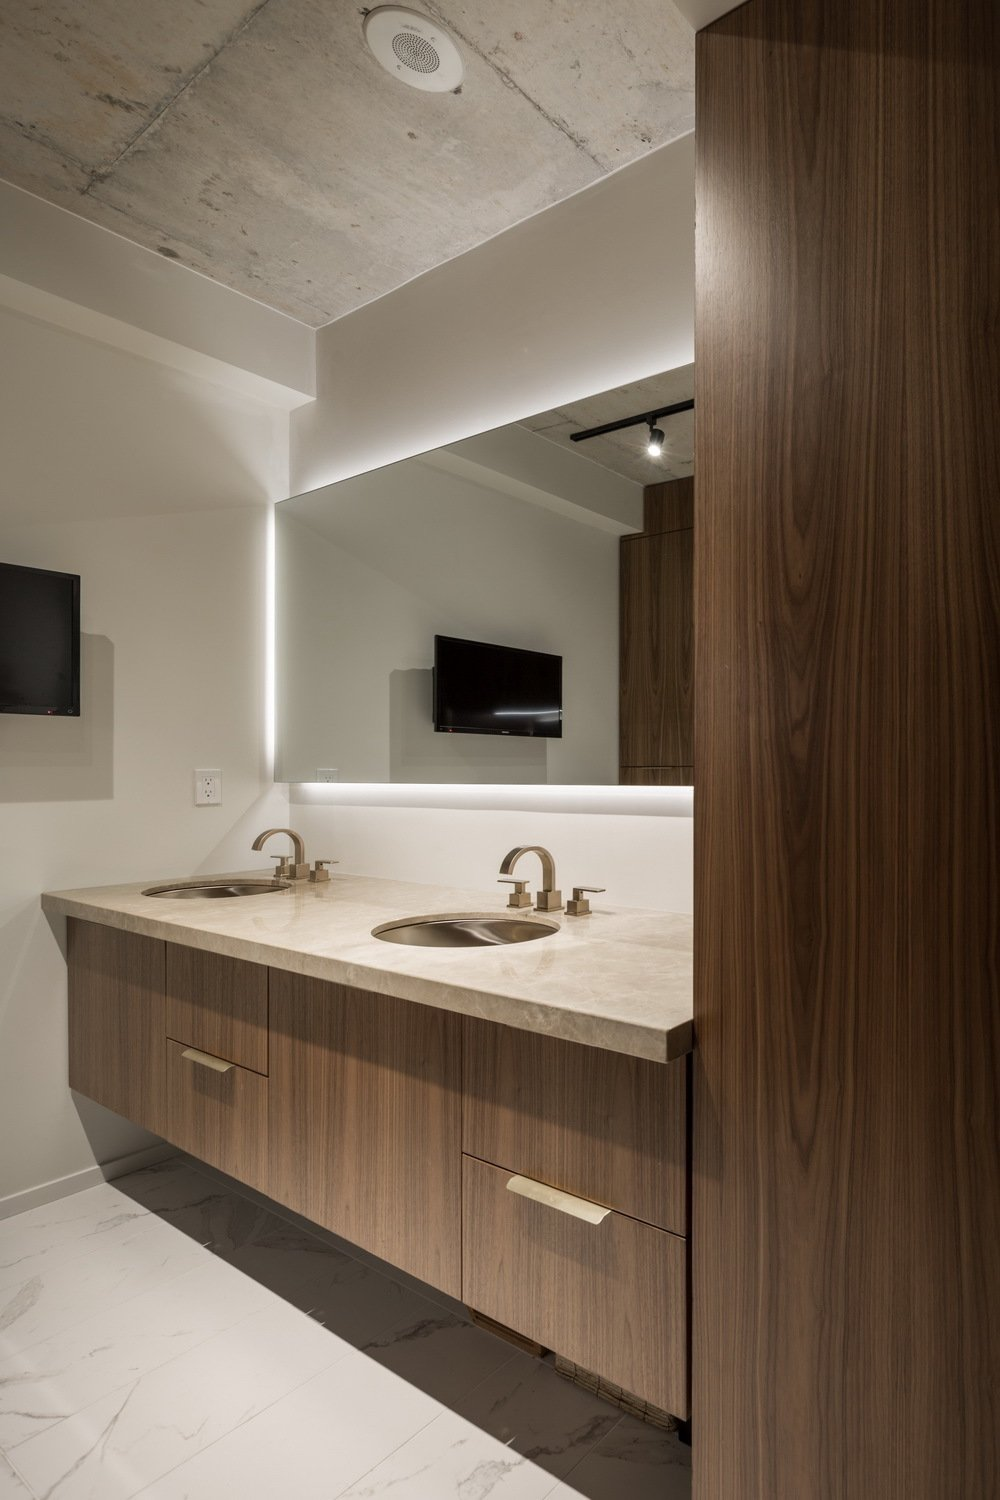 The new custom designed double vanity.  Thompson Hotel Private Suite by ANTHONY PROVENZANO ARCHITECTS